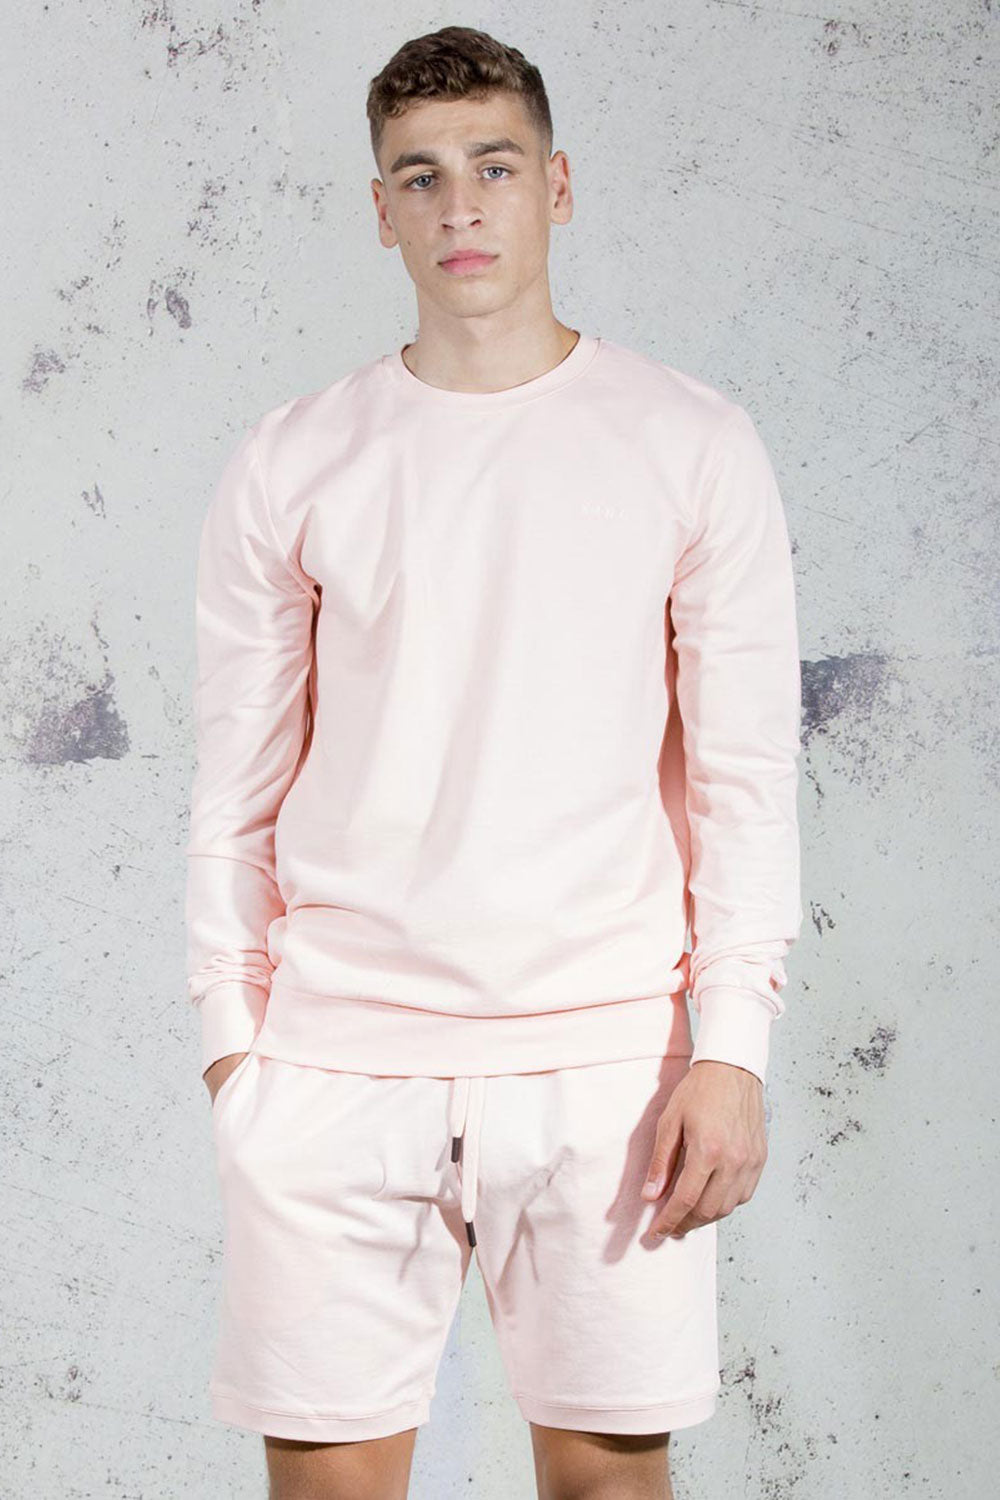 King Apparel Bethnal Summer Track Shorts - Blush - XL